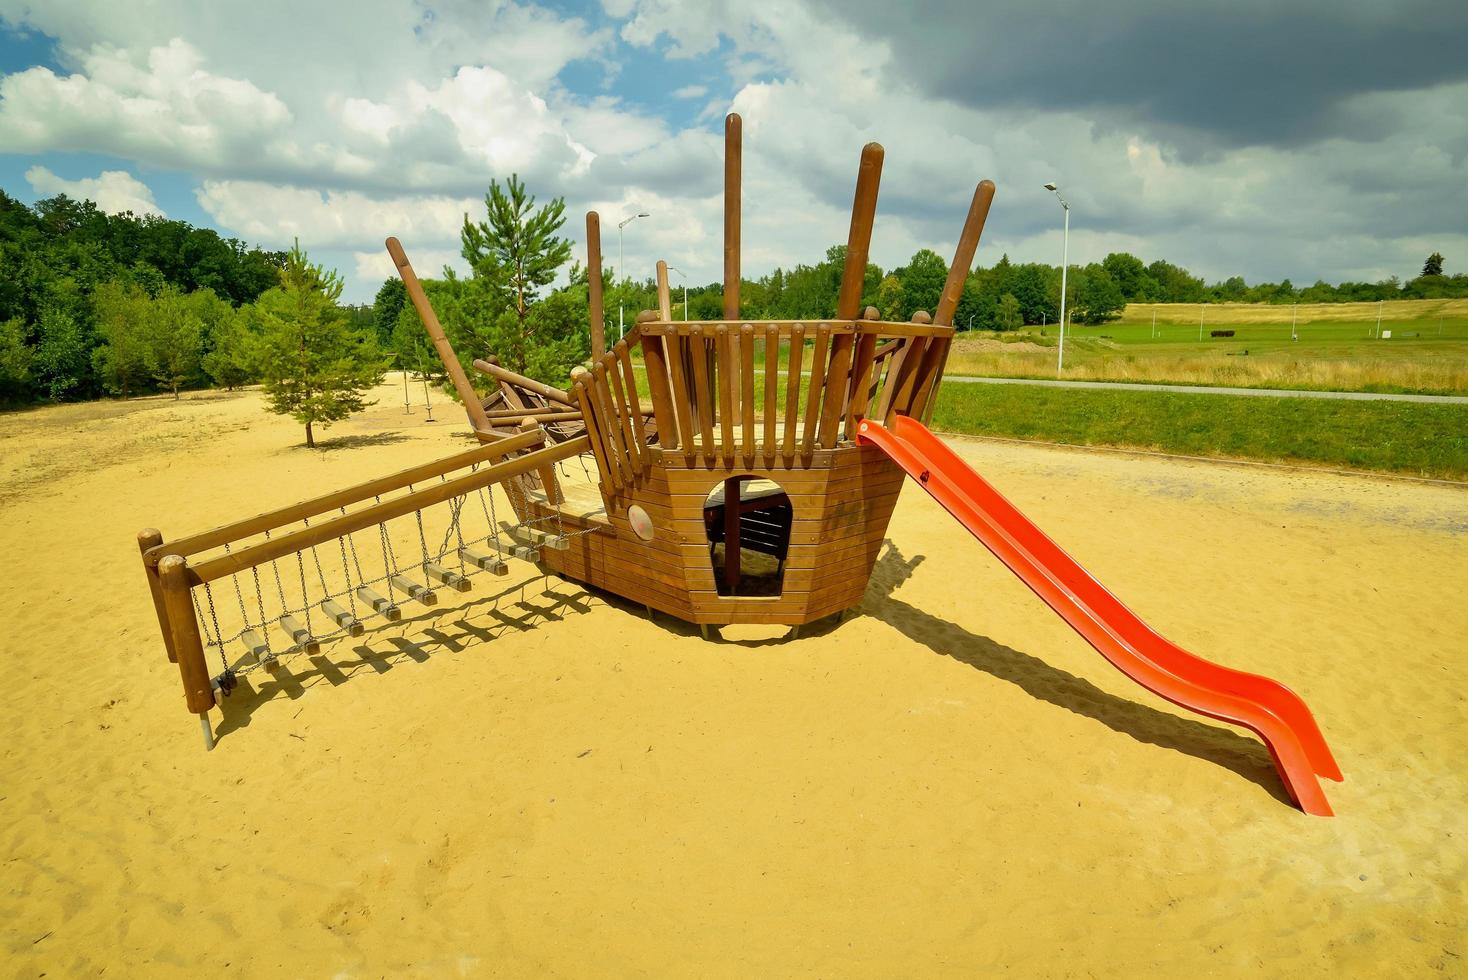 Modern equipped kids playground on a sunny day photo